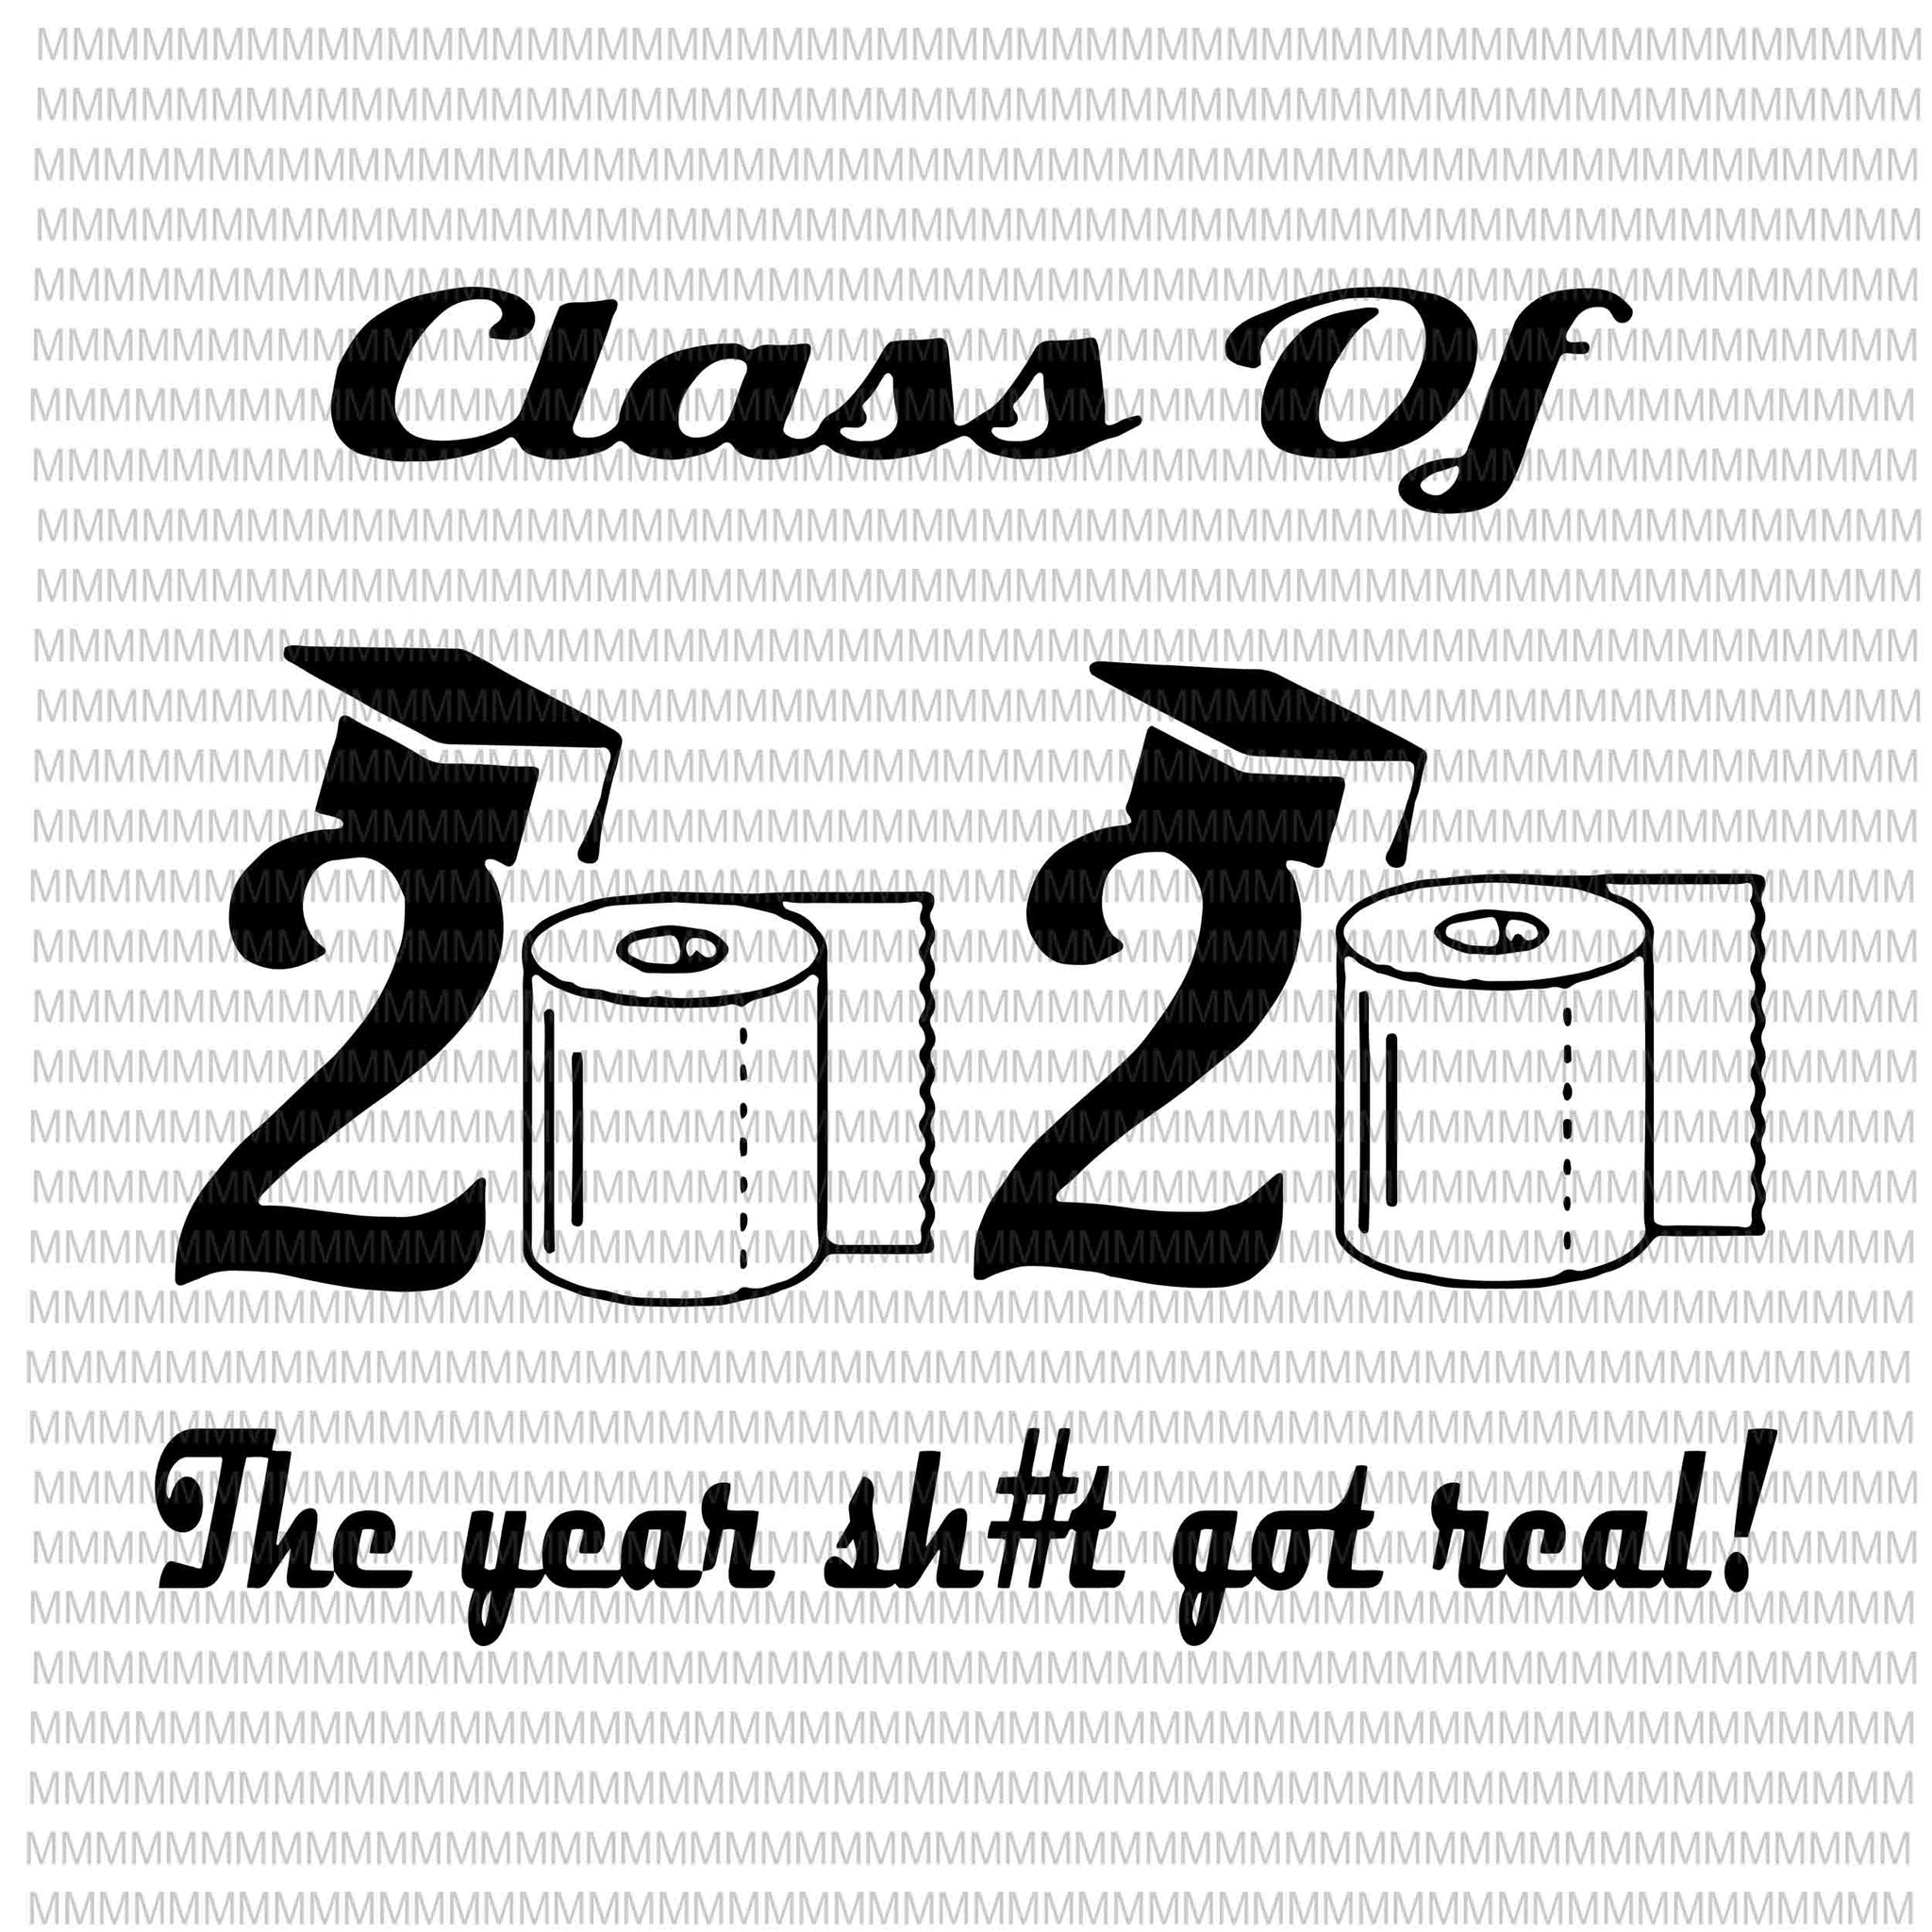 Class of 2020 The Year When Shit Got Real, Graduation svg, funny Graduation quote